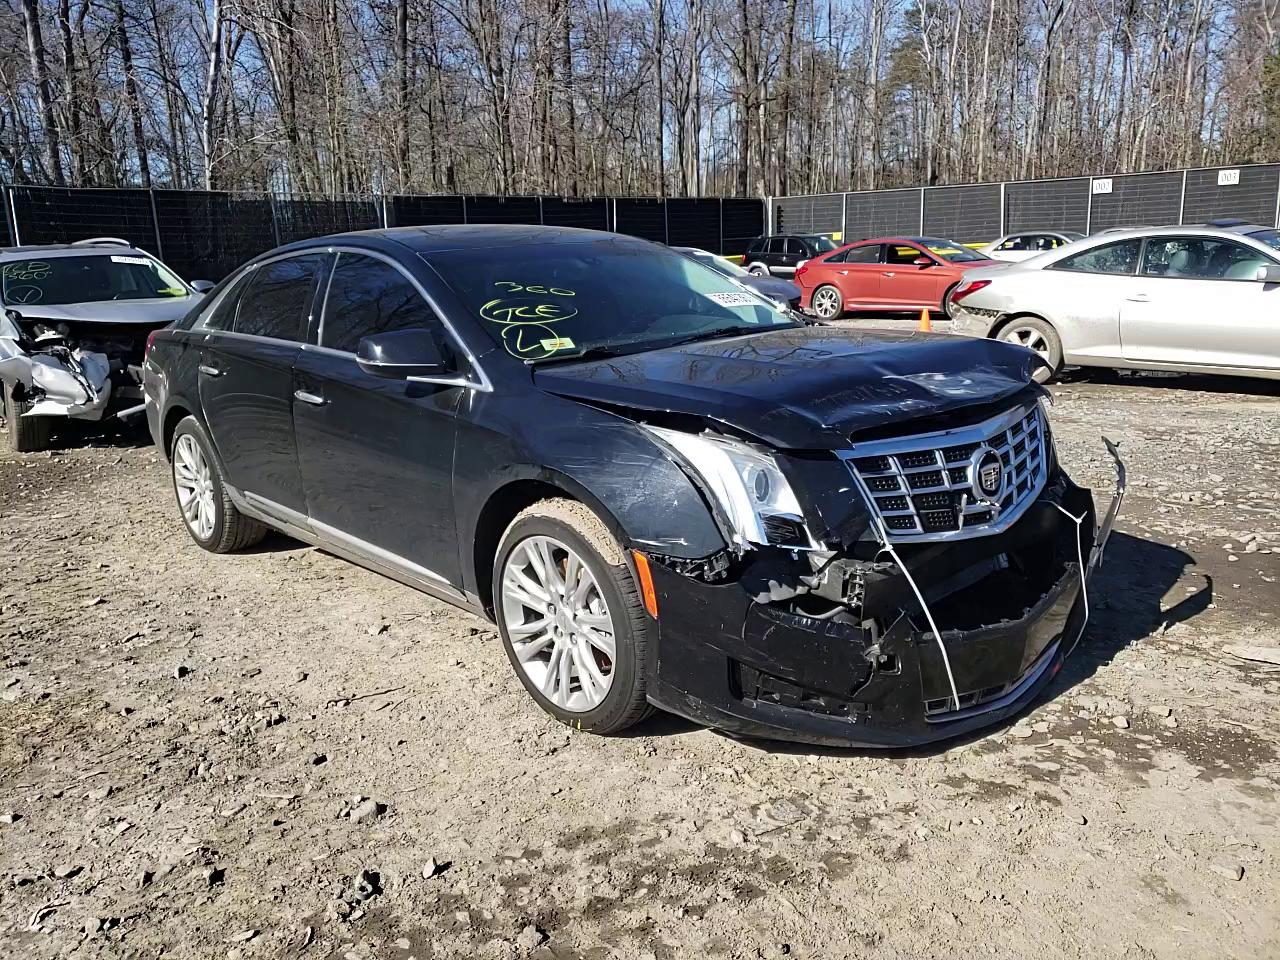 2014 CADILLAC XTS - Other View